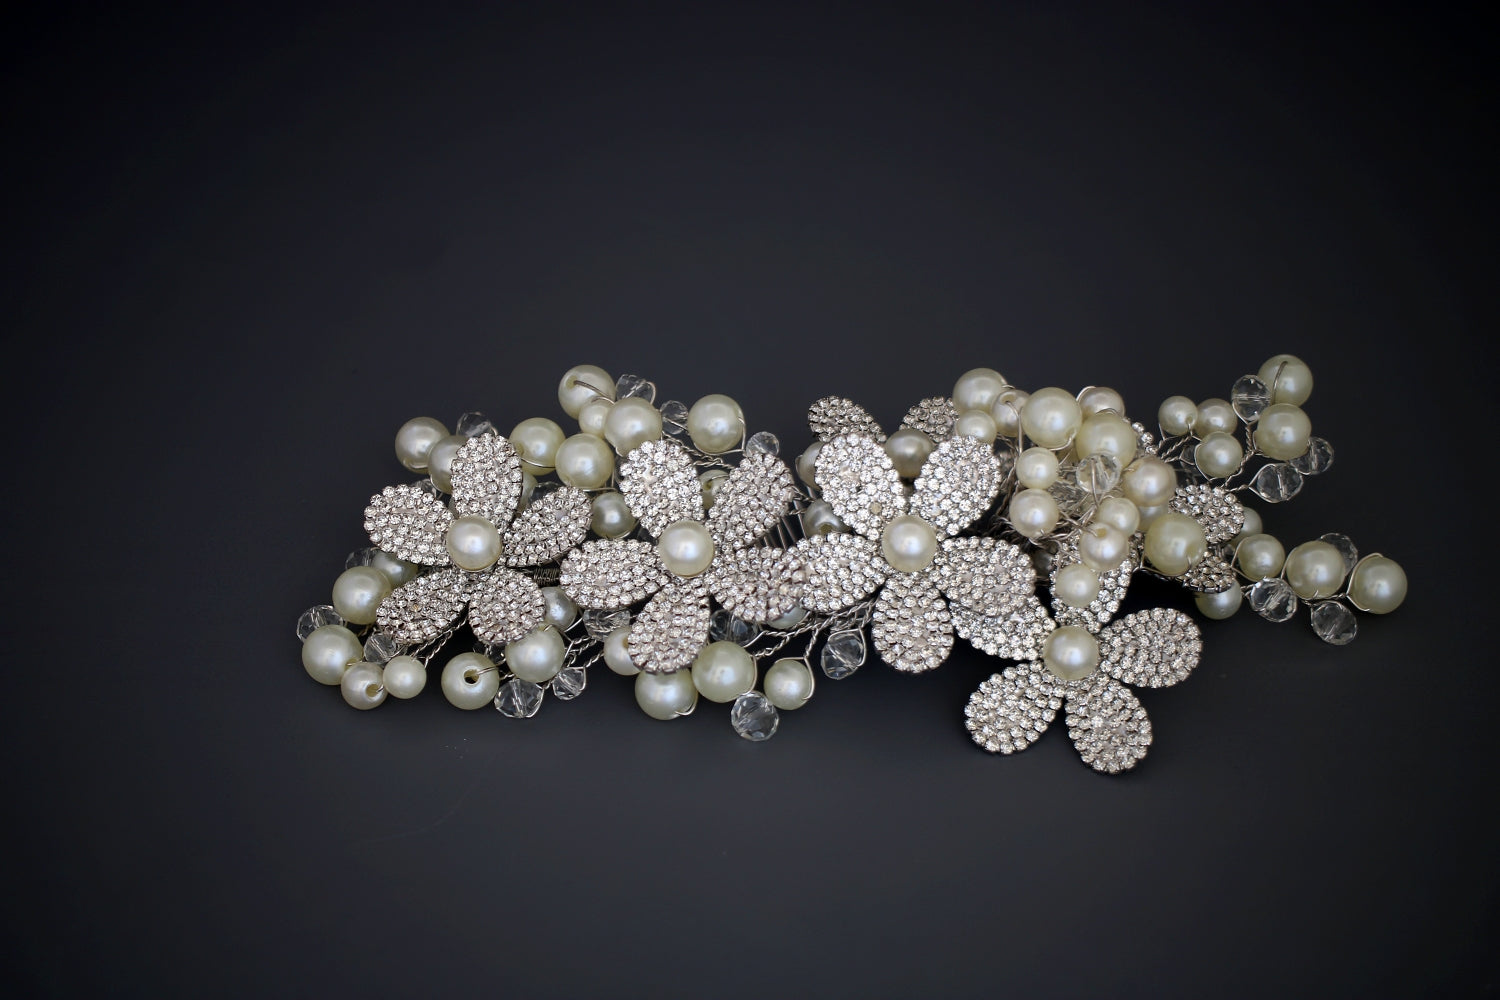 IRIS Swarovski Bridal Headpiece, Wedding Hair Comb with Pearls